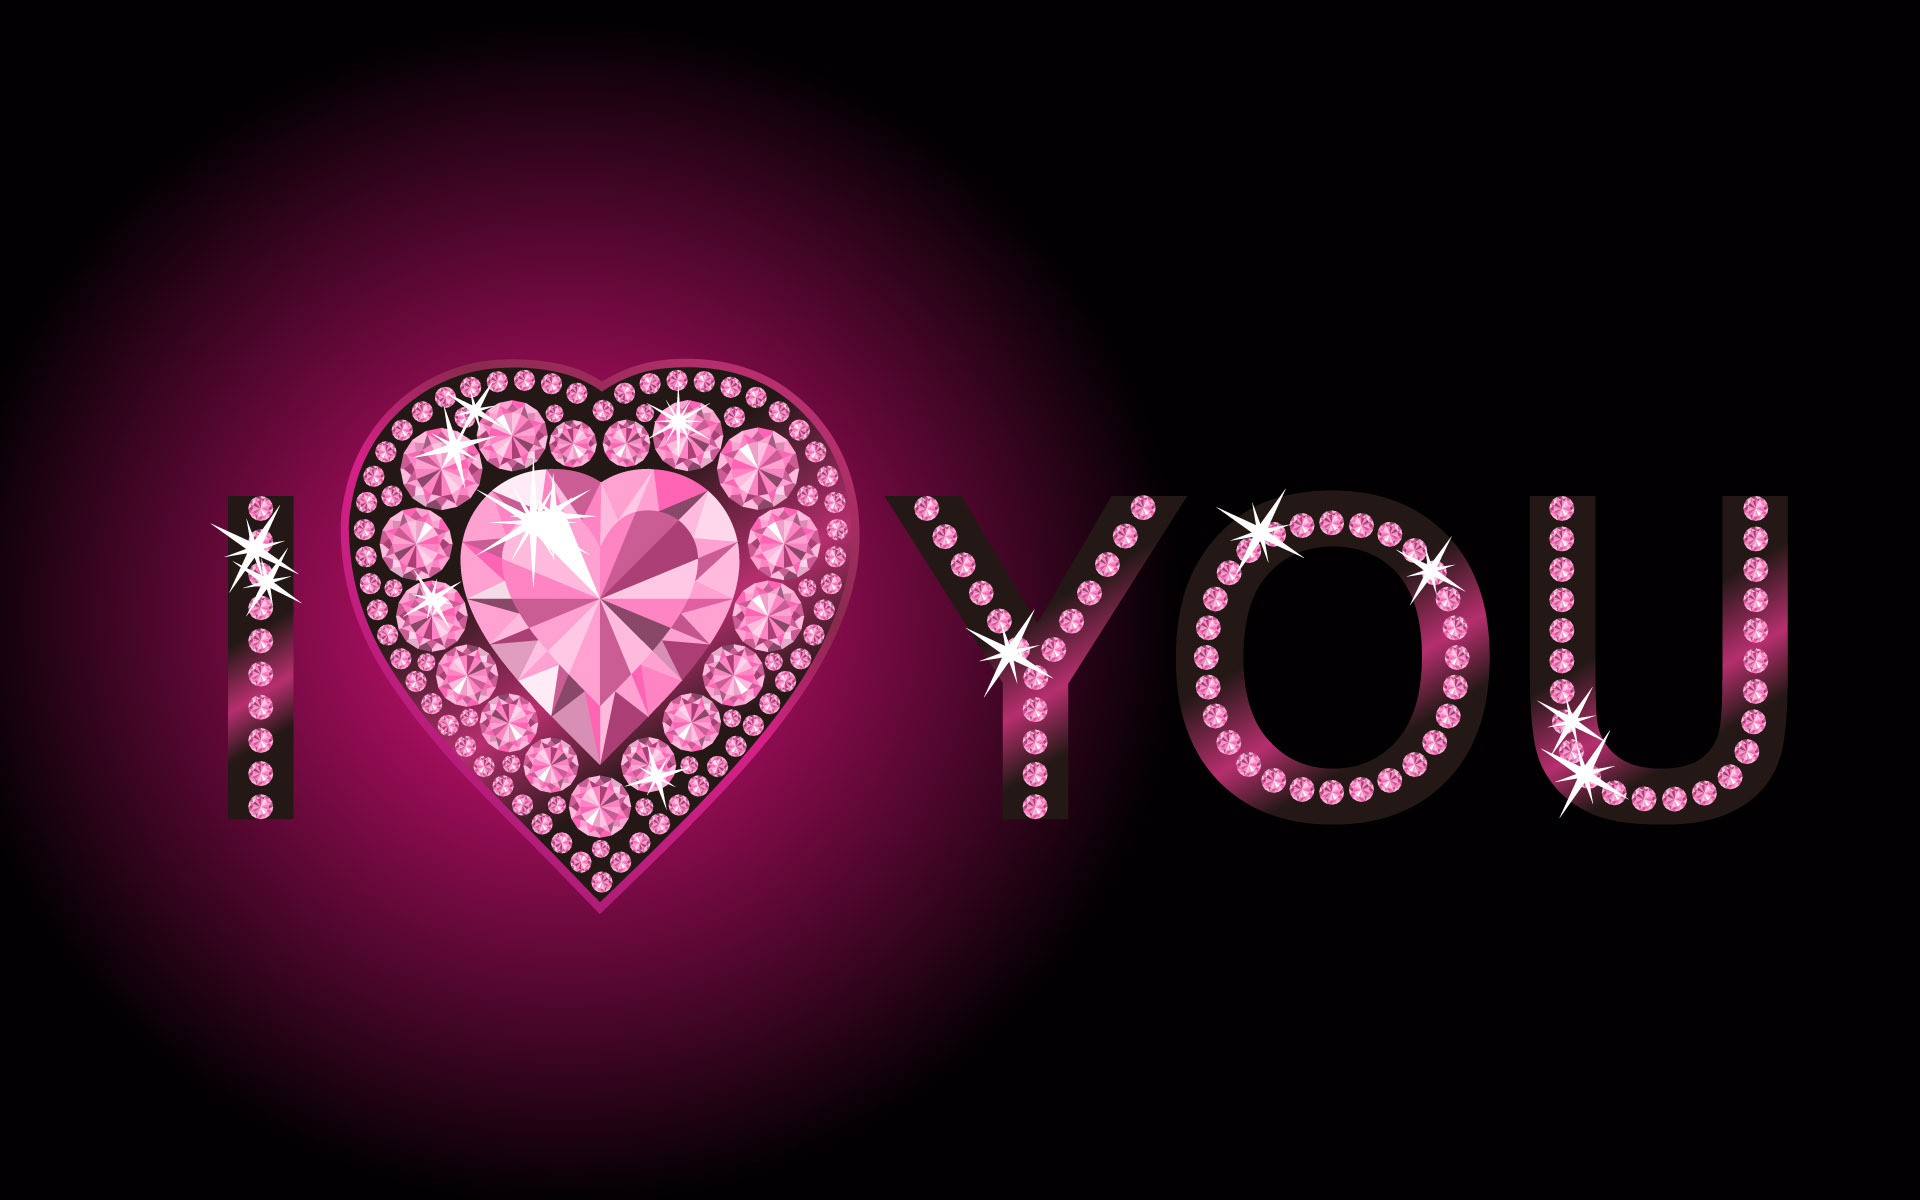 Love Images Desktop Wallpaper : I Love You Desktop Wallpaper - Wallpaper, High Definition, High Quality, Widescreen